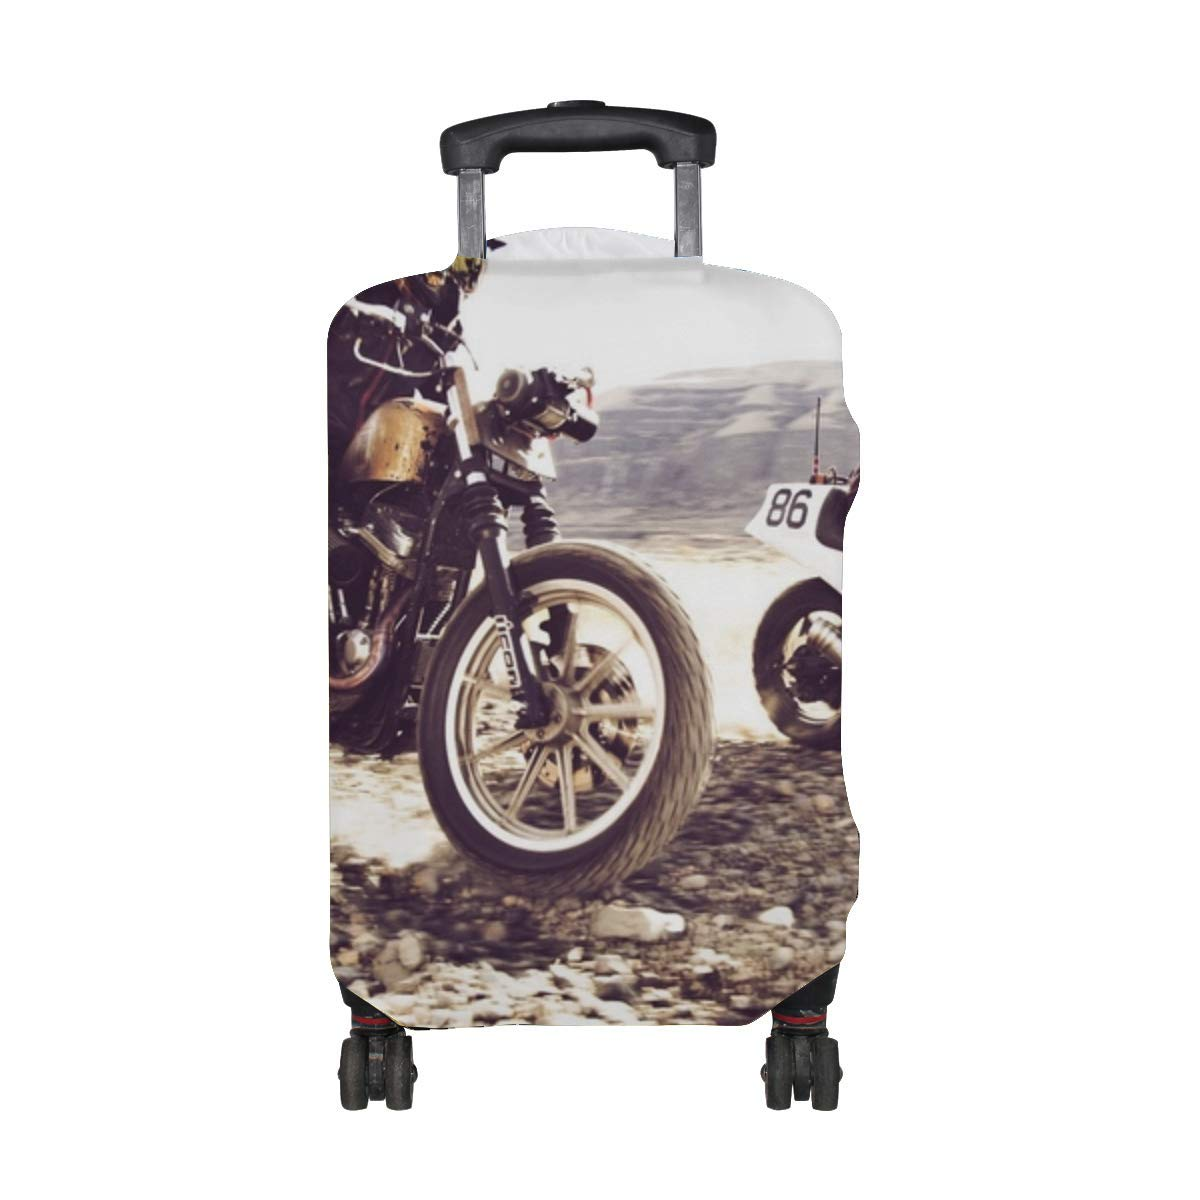 Speed Road Race Bikes Pattern Print Travel Luggage Protector Baggage Suitcase Cover Fits 18-21 Inch Luggage